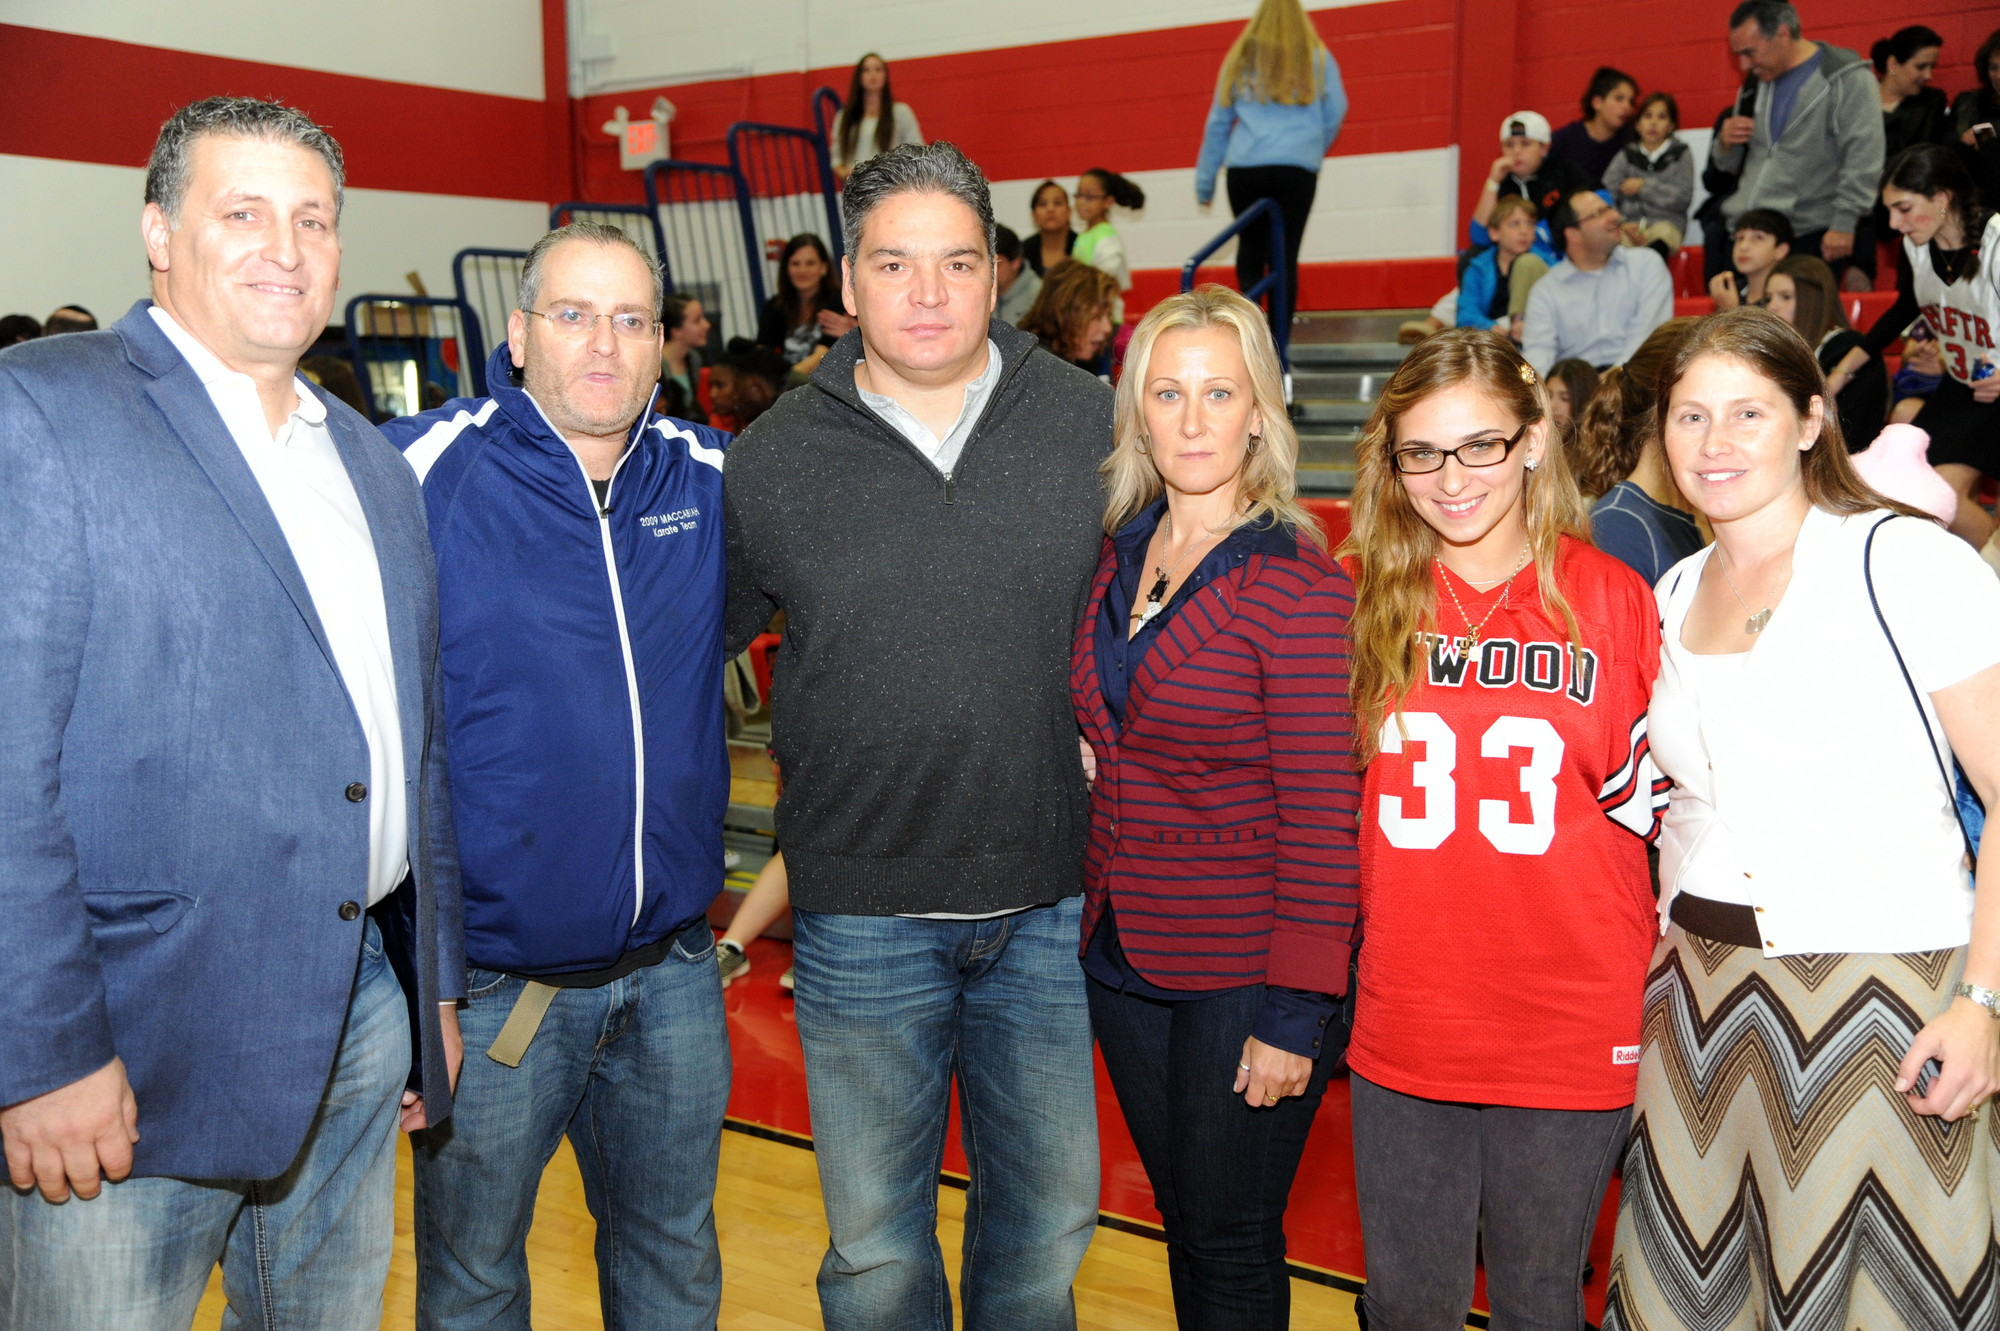 The HAFTR Hawks and Inwood Buccaneers played a basketball game in memory of Gio Cipriano. From left were organizers Frank DeCicco Jr. and David Loniado, John, Georgina and Gianna Cipriano, and Sami Loniado.